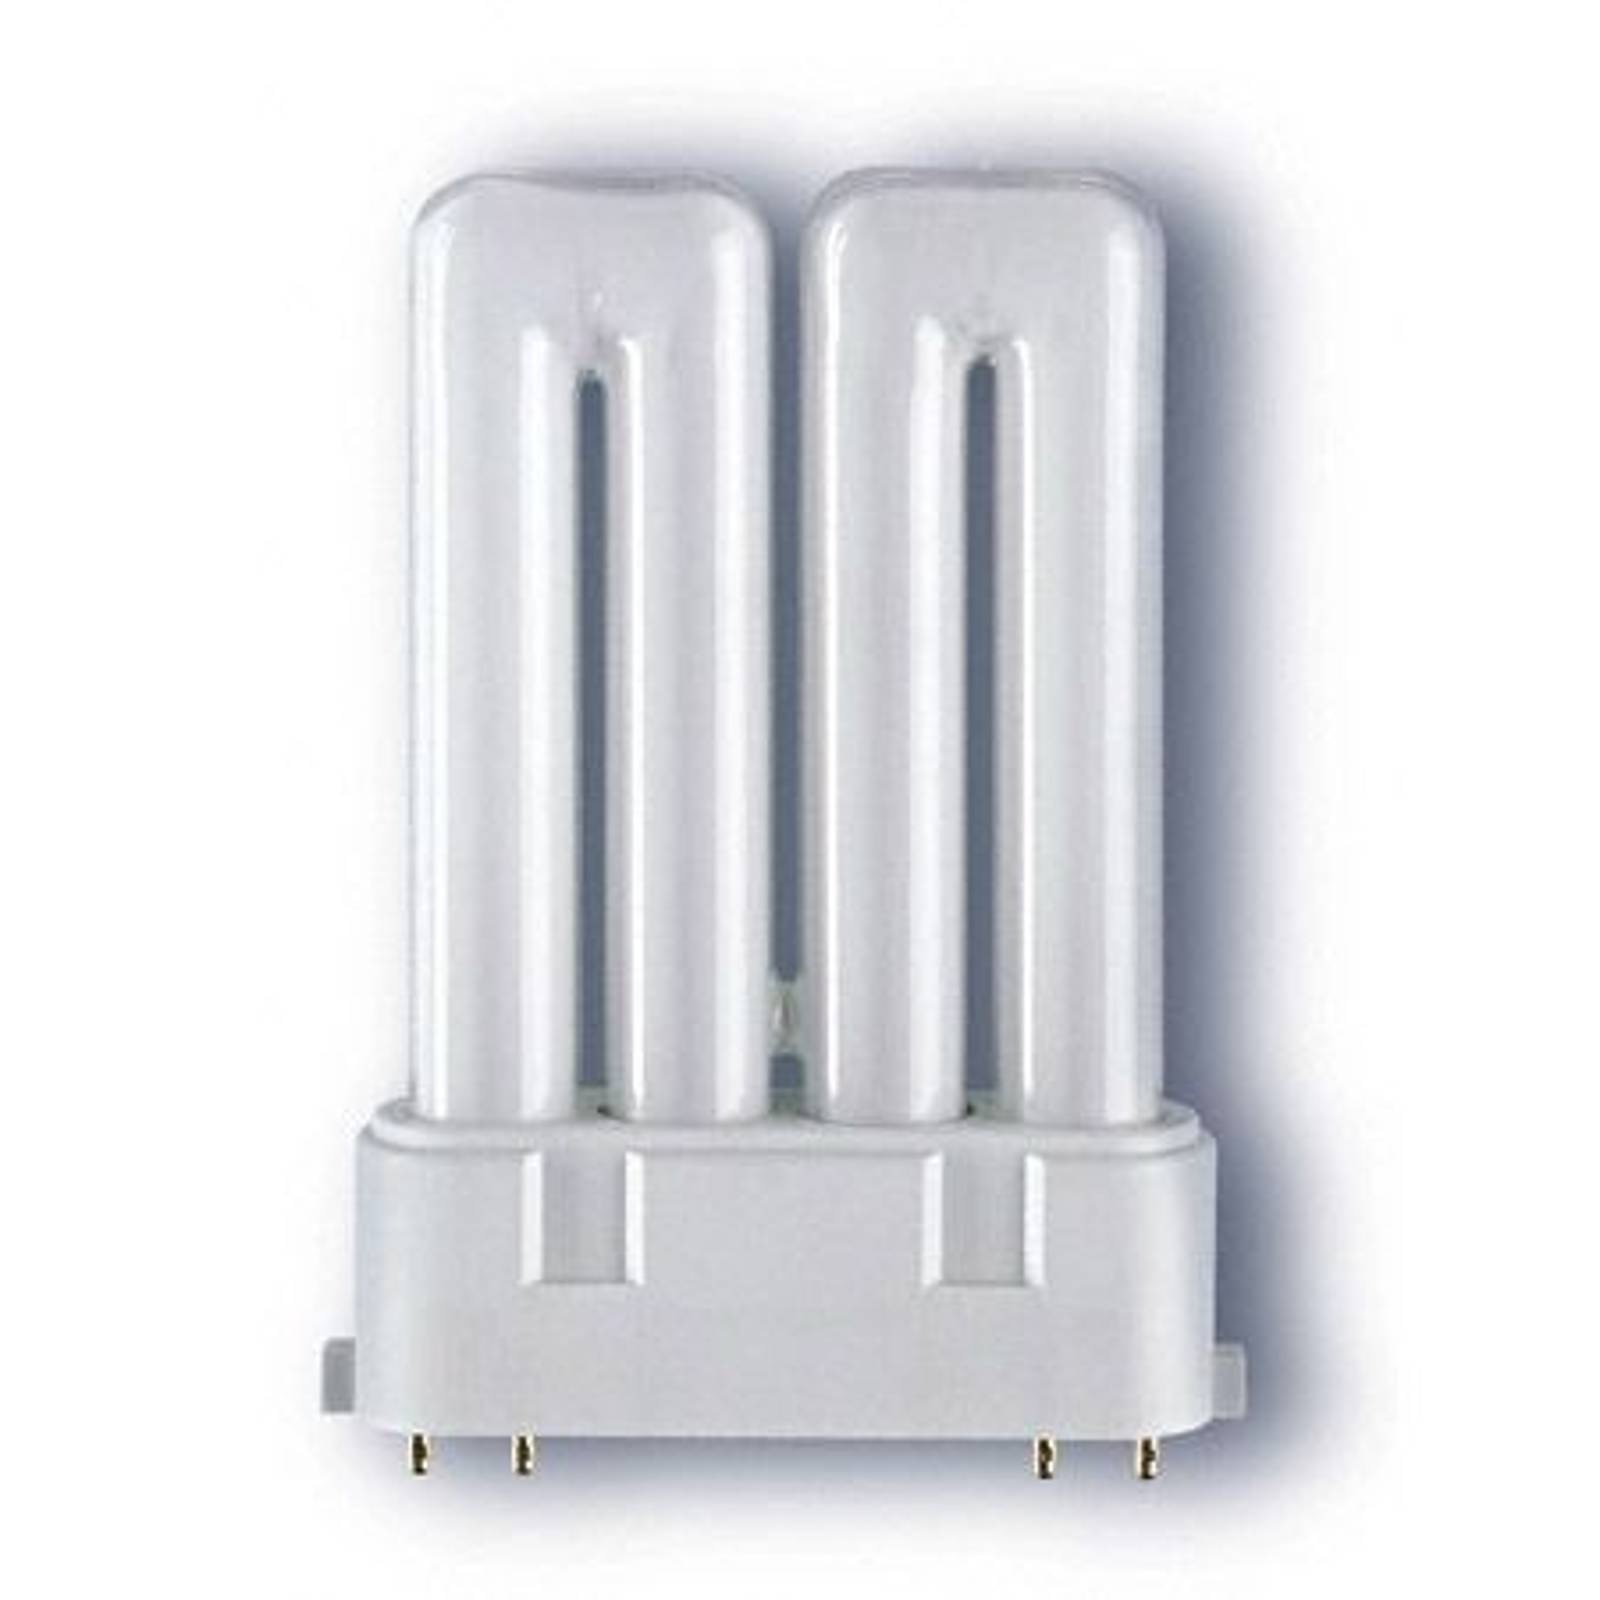 2G10 compact fluorescent bulb Dulux F 36W/827 from Osram